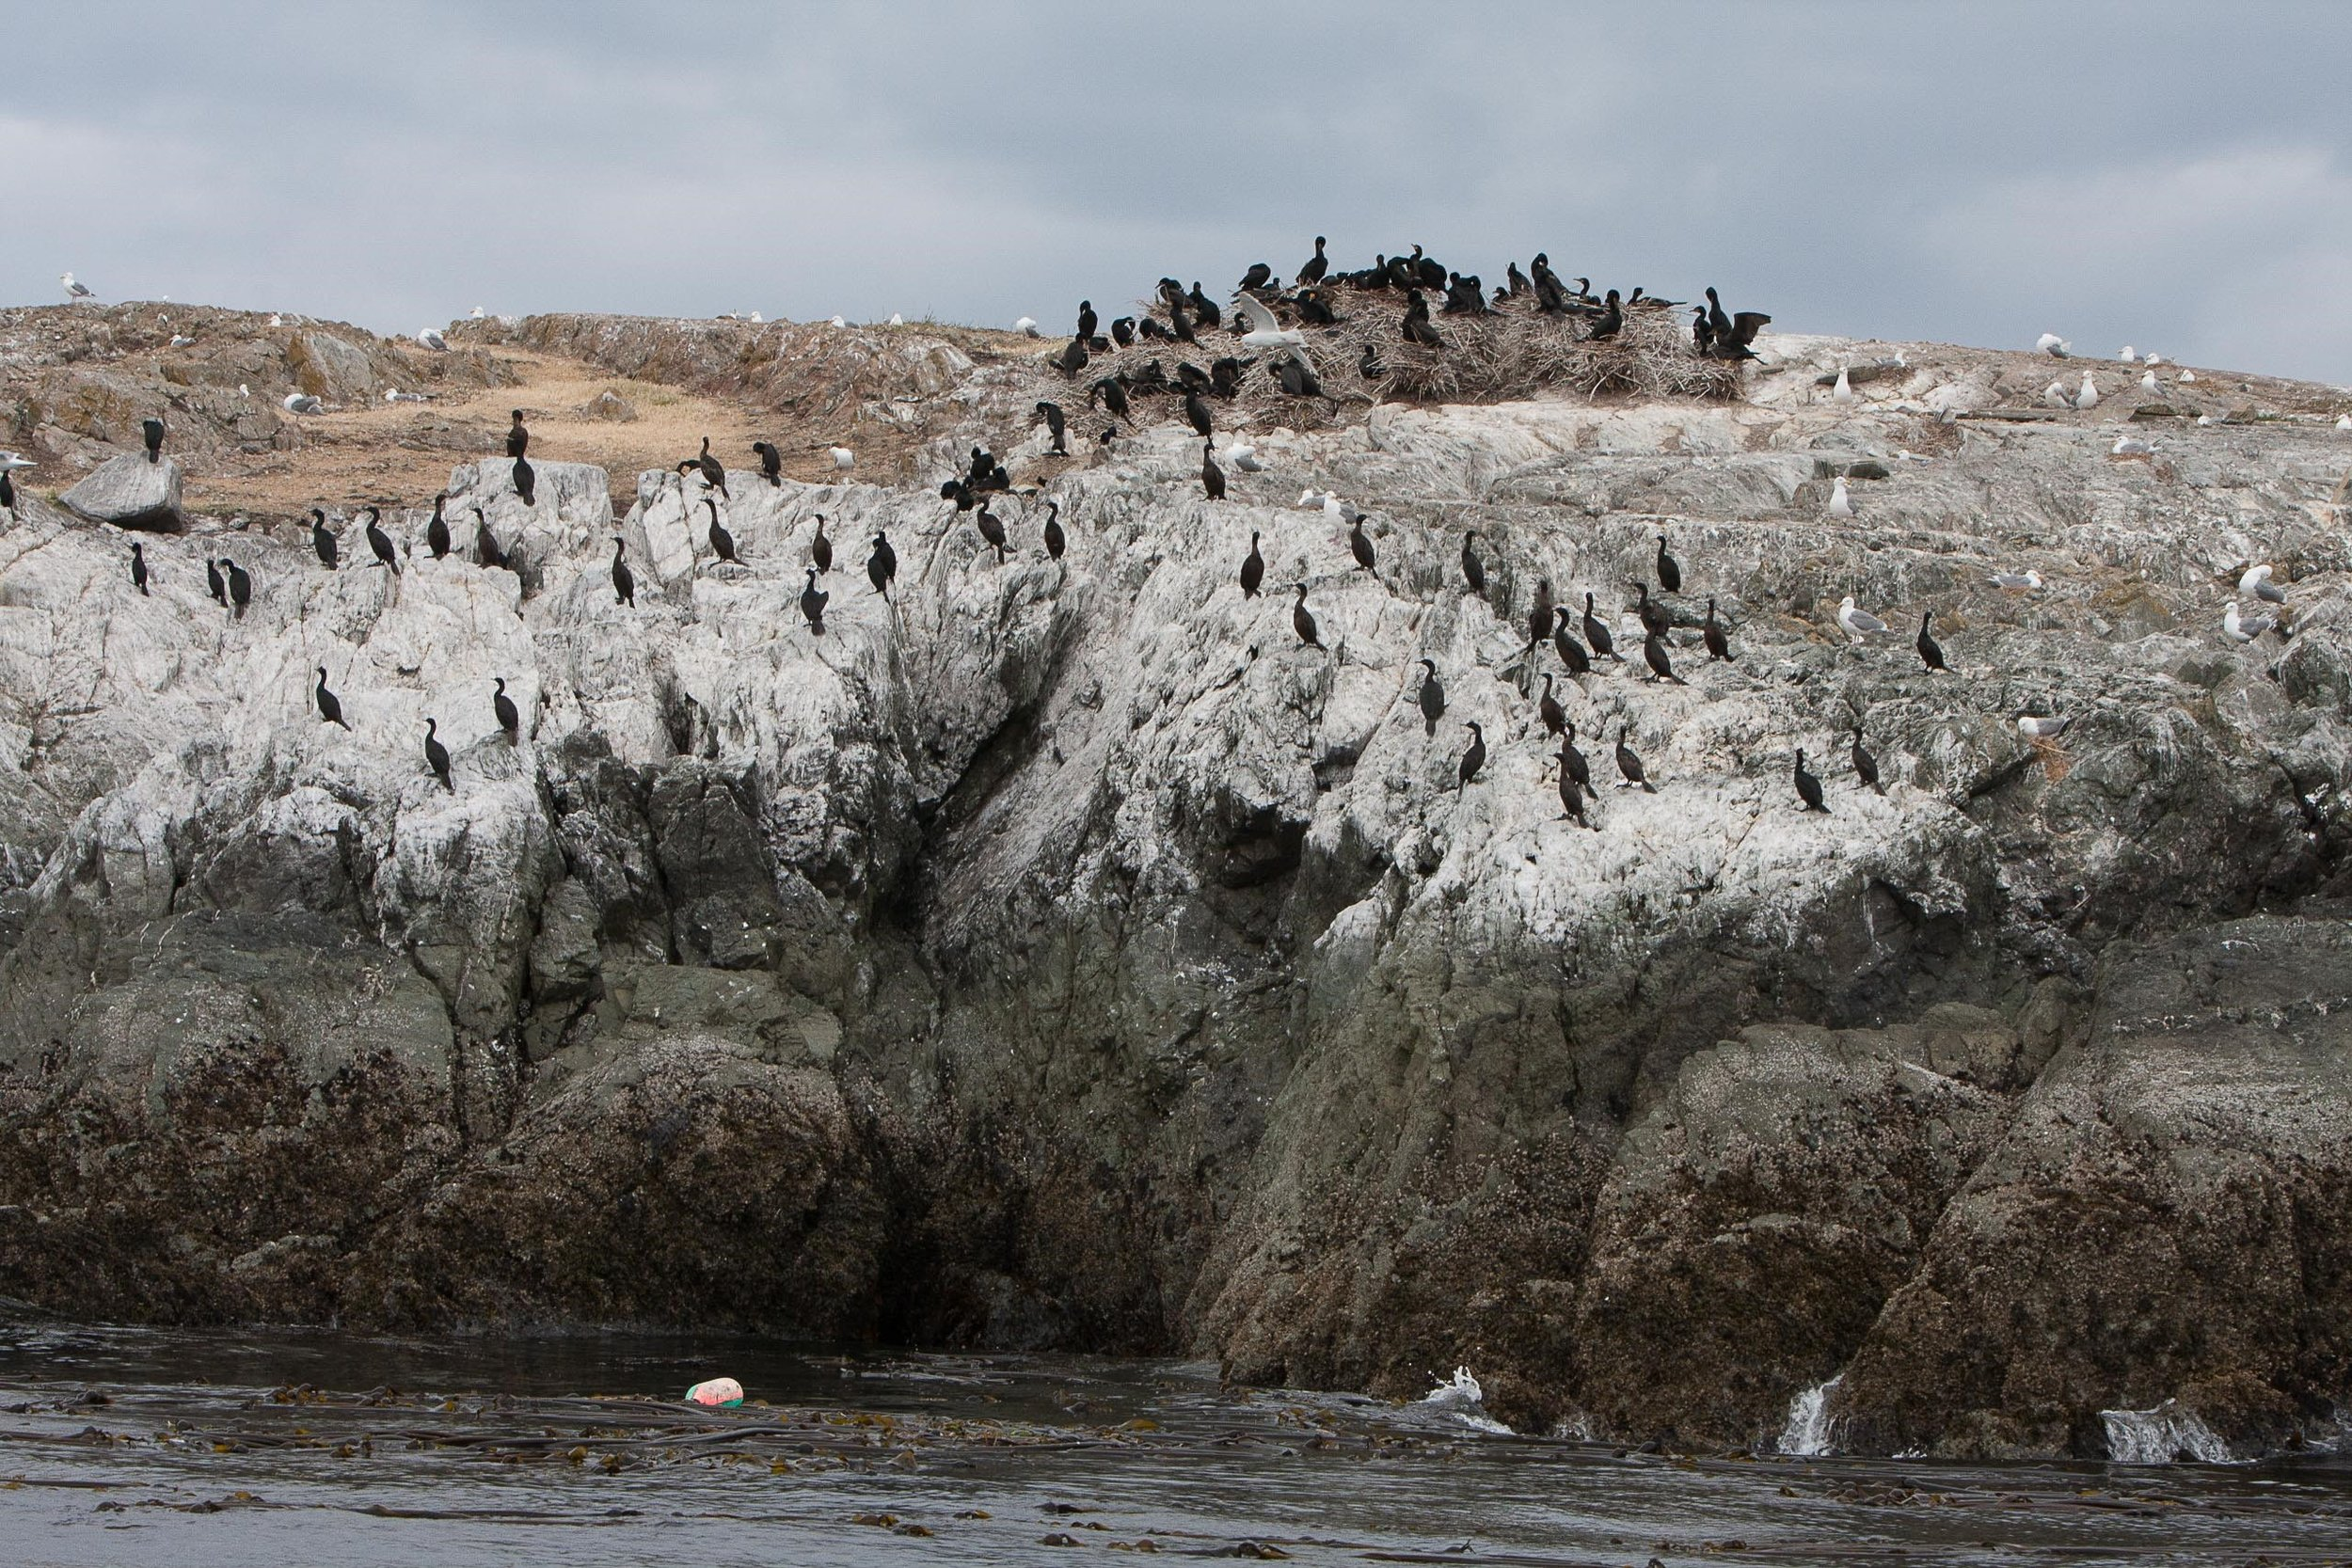 Double-crested cormorants on stick nests, pelagic cormorants on the white-washed rock wall and glaucous-winged gulls scattered on the rocky bald